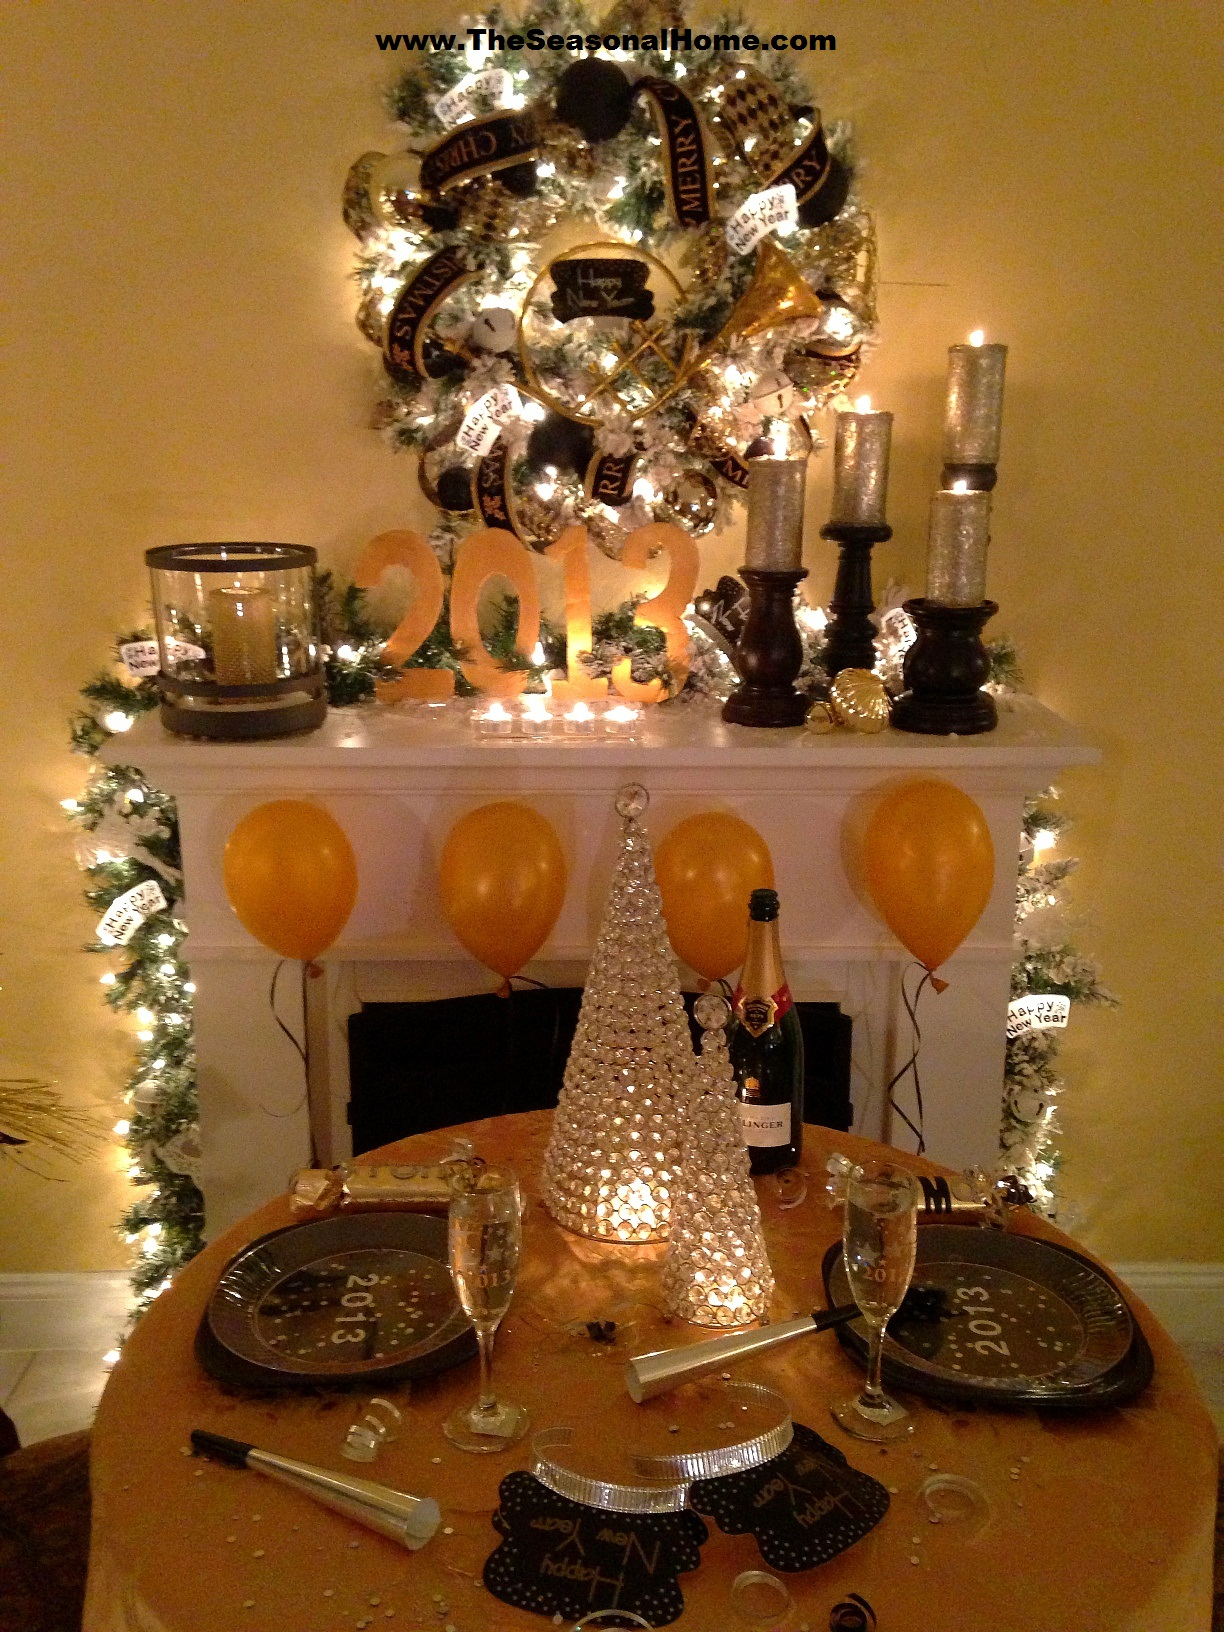 Cozy New Year's Eve Dinner Party (at home) « The Seasonal Home